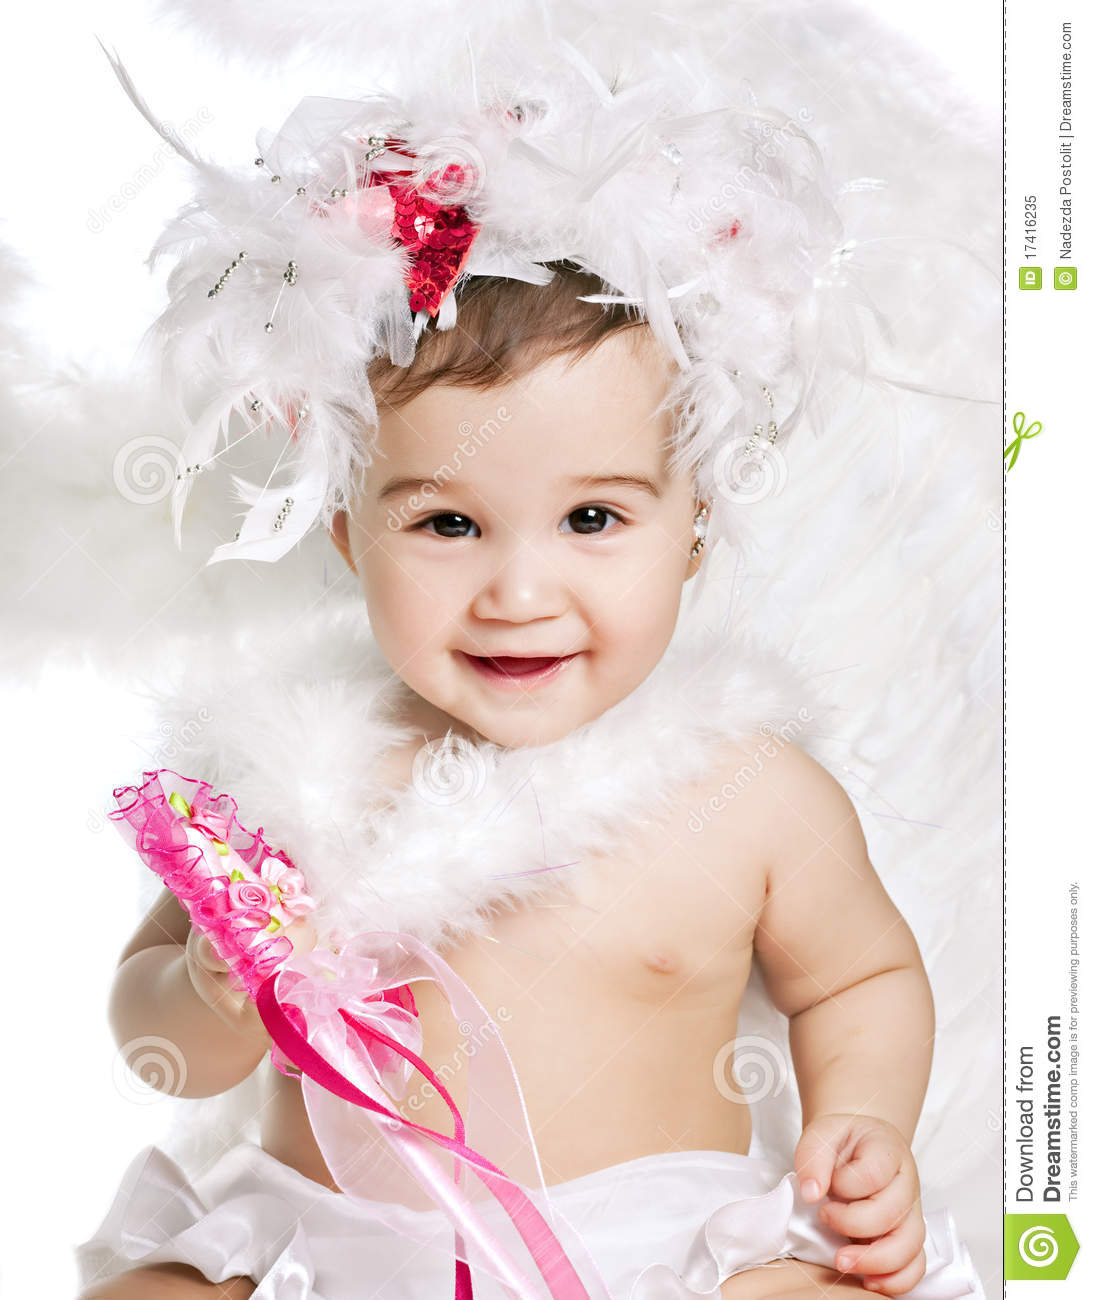 Asian baby boy in a angel fancy dress royalty free stock photo image